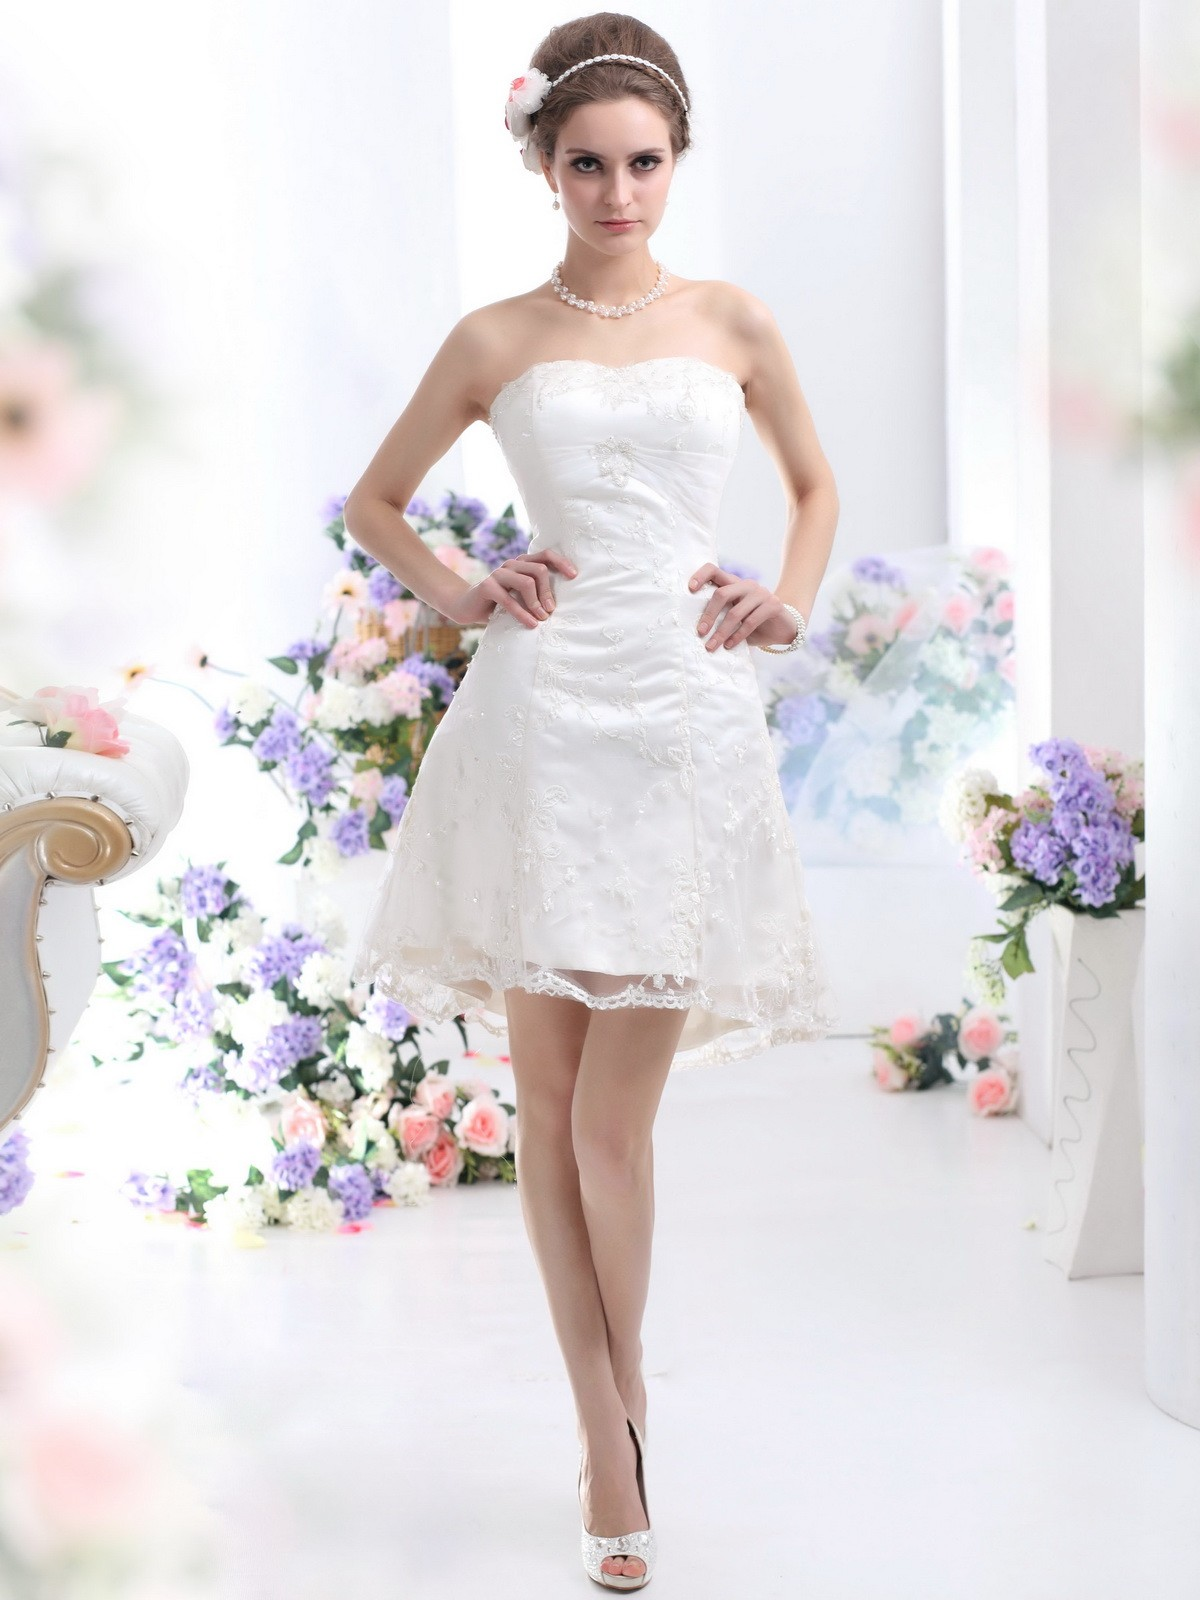 Elegant Short Dresses for Weddings, Wedding Gowns by Simple Elegance, Simple Short Wedding Dress, Classy Short Wedding Dresses, Simple White Short Wedding Dress, Very Simple Short Wedding Dresses, Short Simple Bridesmaid Dresses, Simple Tulle Wedding Dress